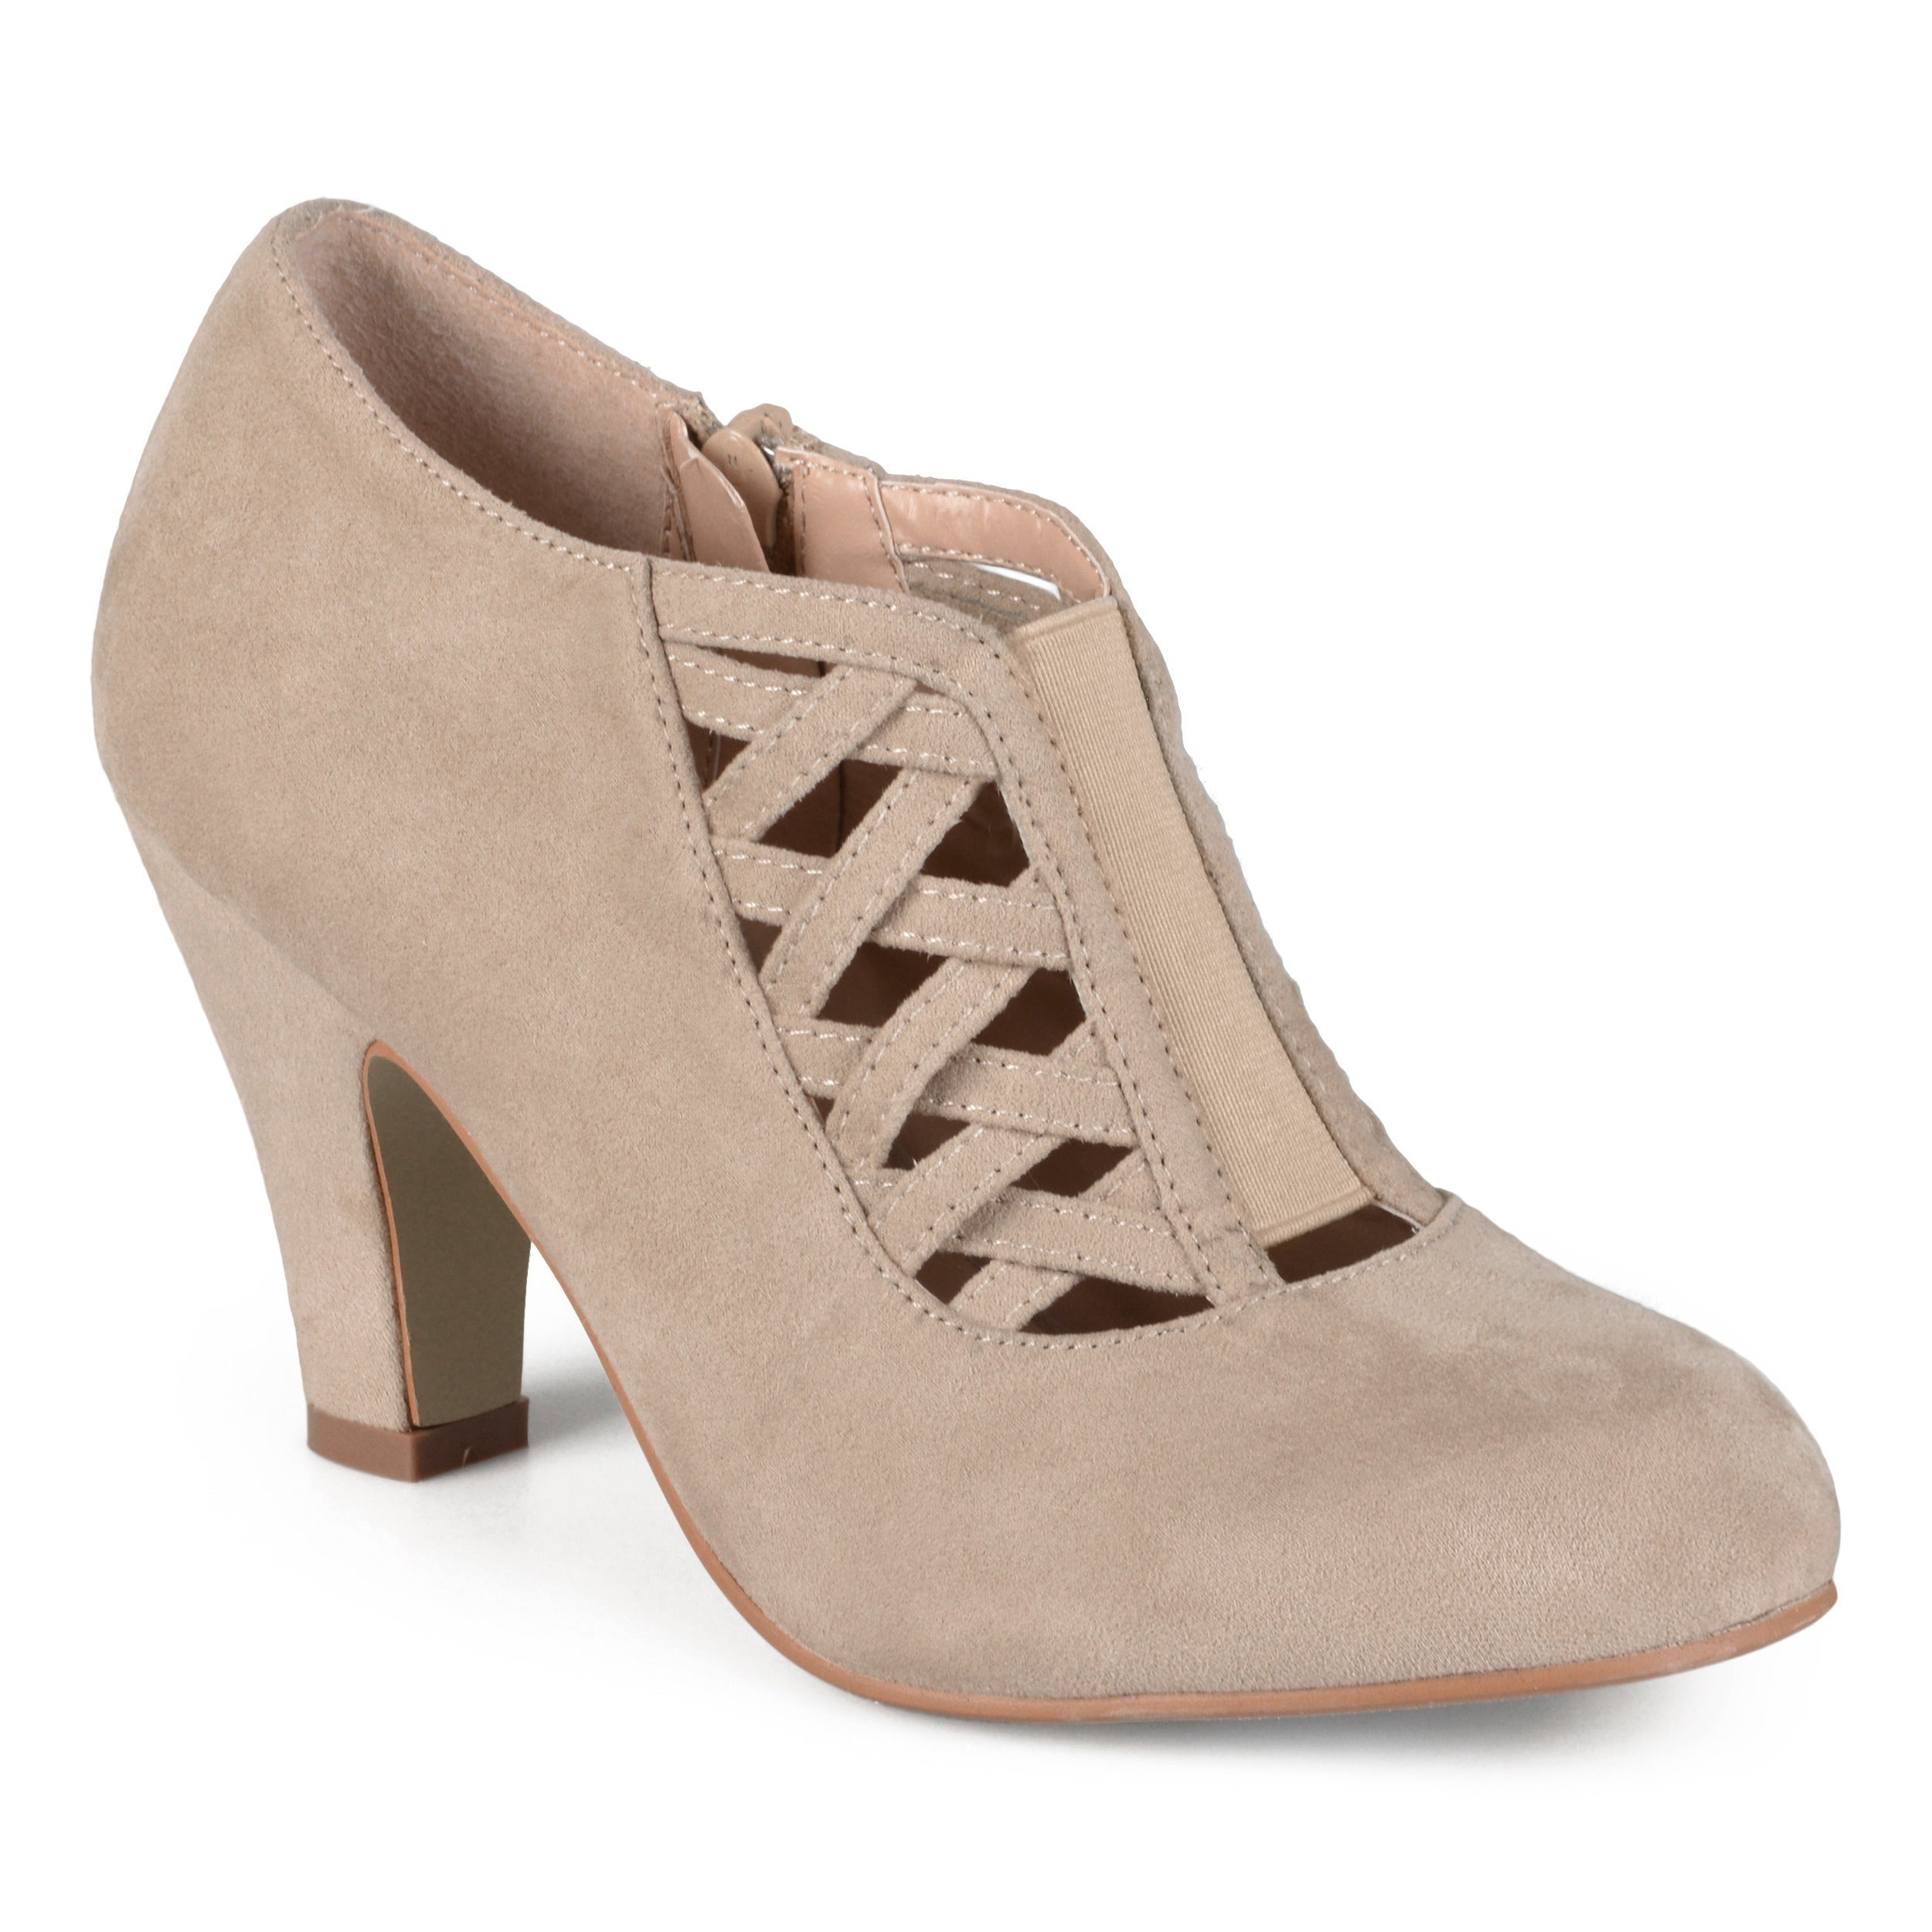 9626b794ef Shop Journee Collection Women's Piper Faux Suede Round Toe High Heel ...